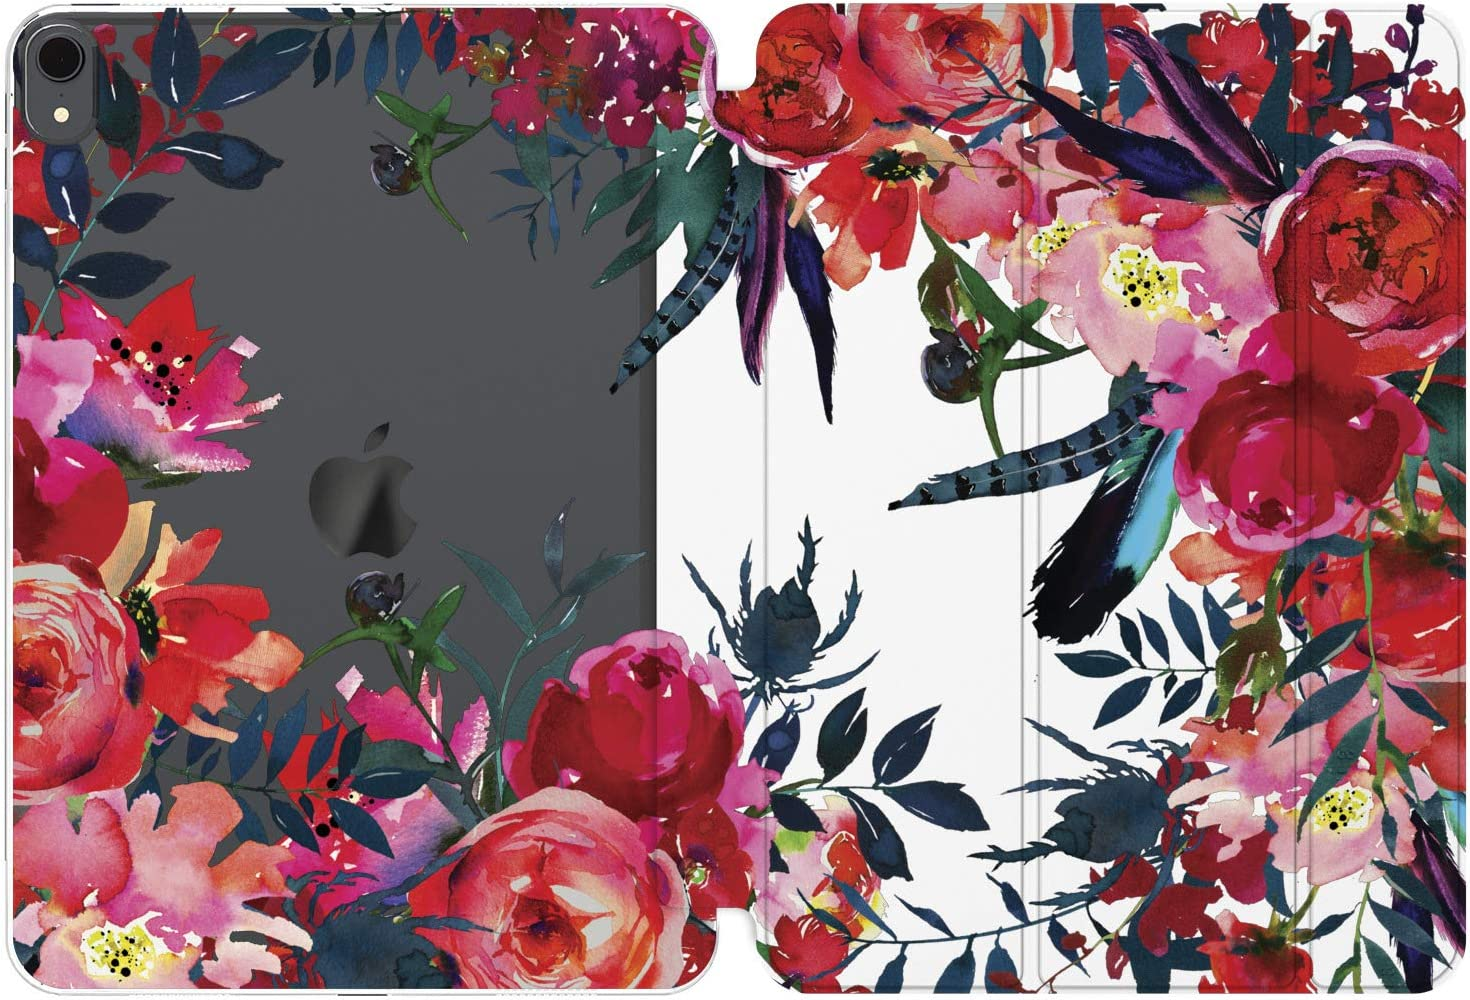 Cavka Case for Apple iPad 10.2 8th Gen 12.9 Pro 11 10.5 9.7 Air 3 Mini 5 4 3 2 1 2019/18 Red Leaves Beautiful Flower Peony Girl Bright Blossom Smart Cover Auto Wake Sleep Slim Design Floral Rose